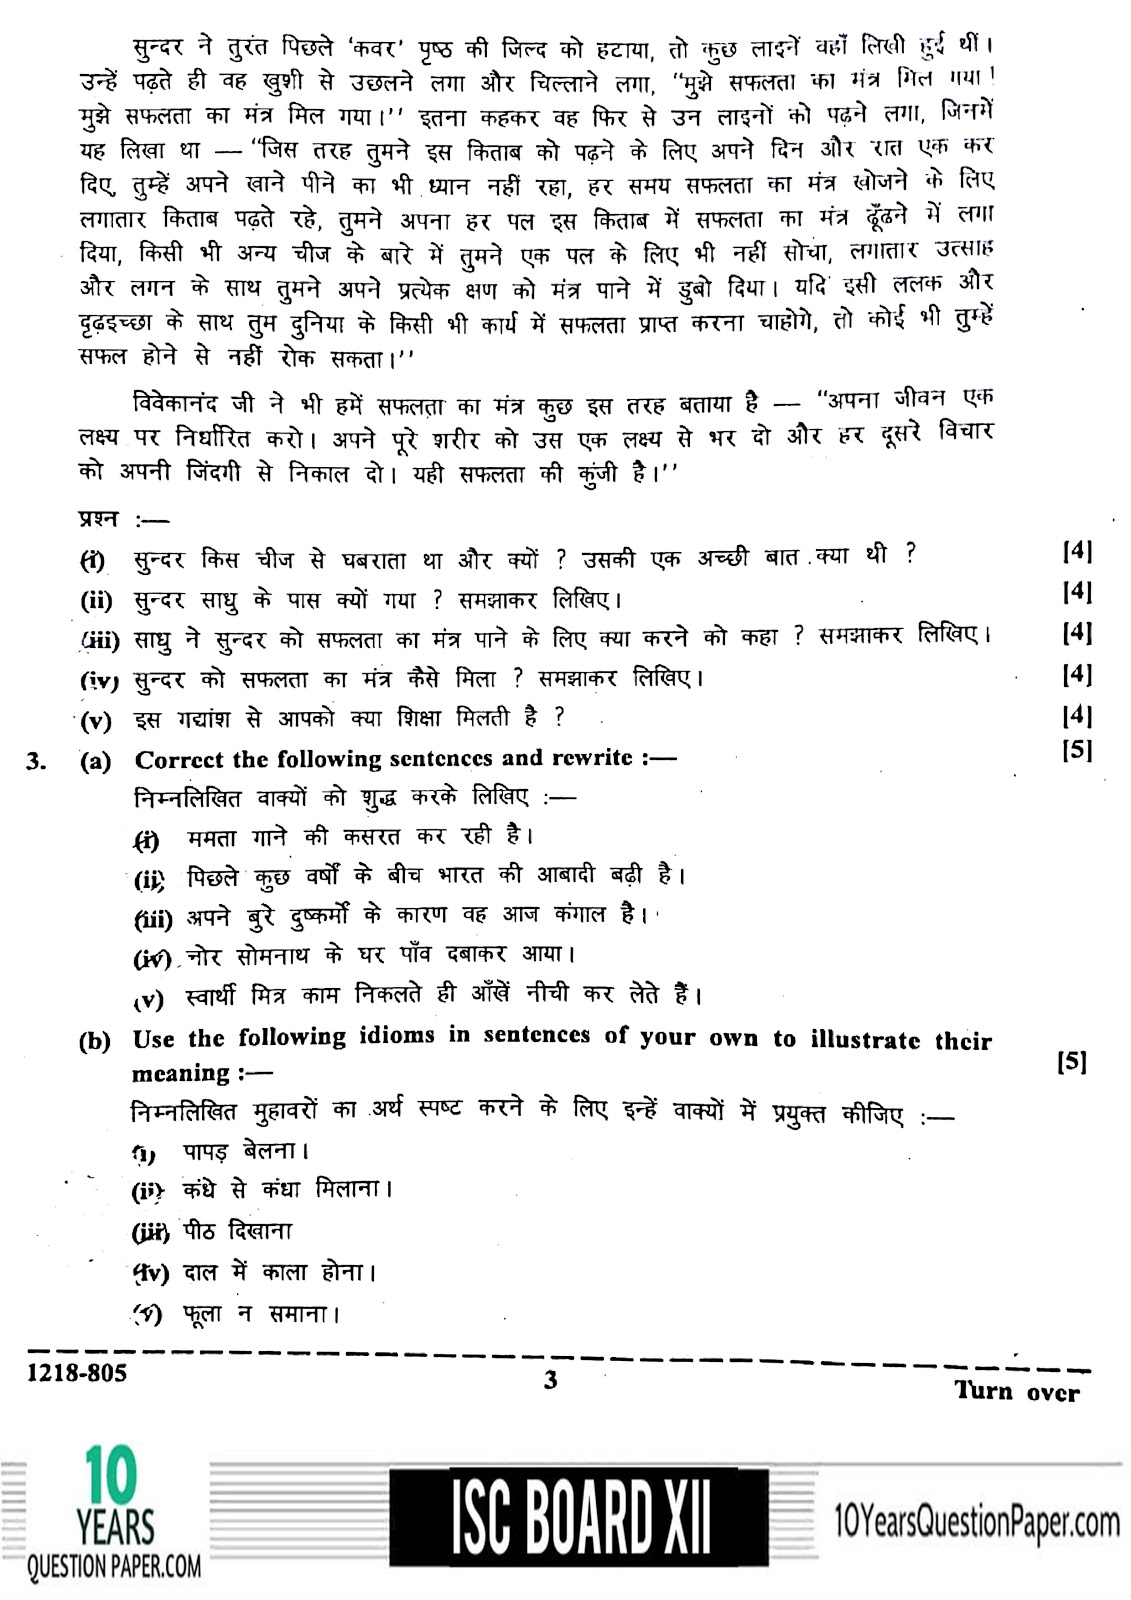 ISC Board 2018 class 12th Hindi question paper Download page-03